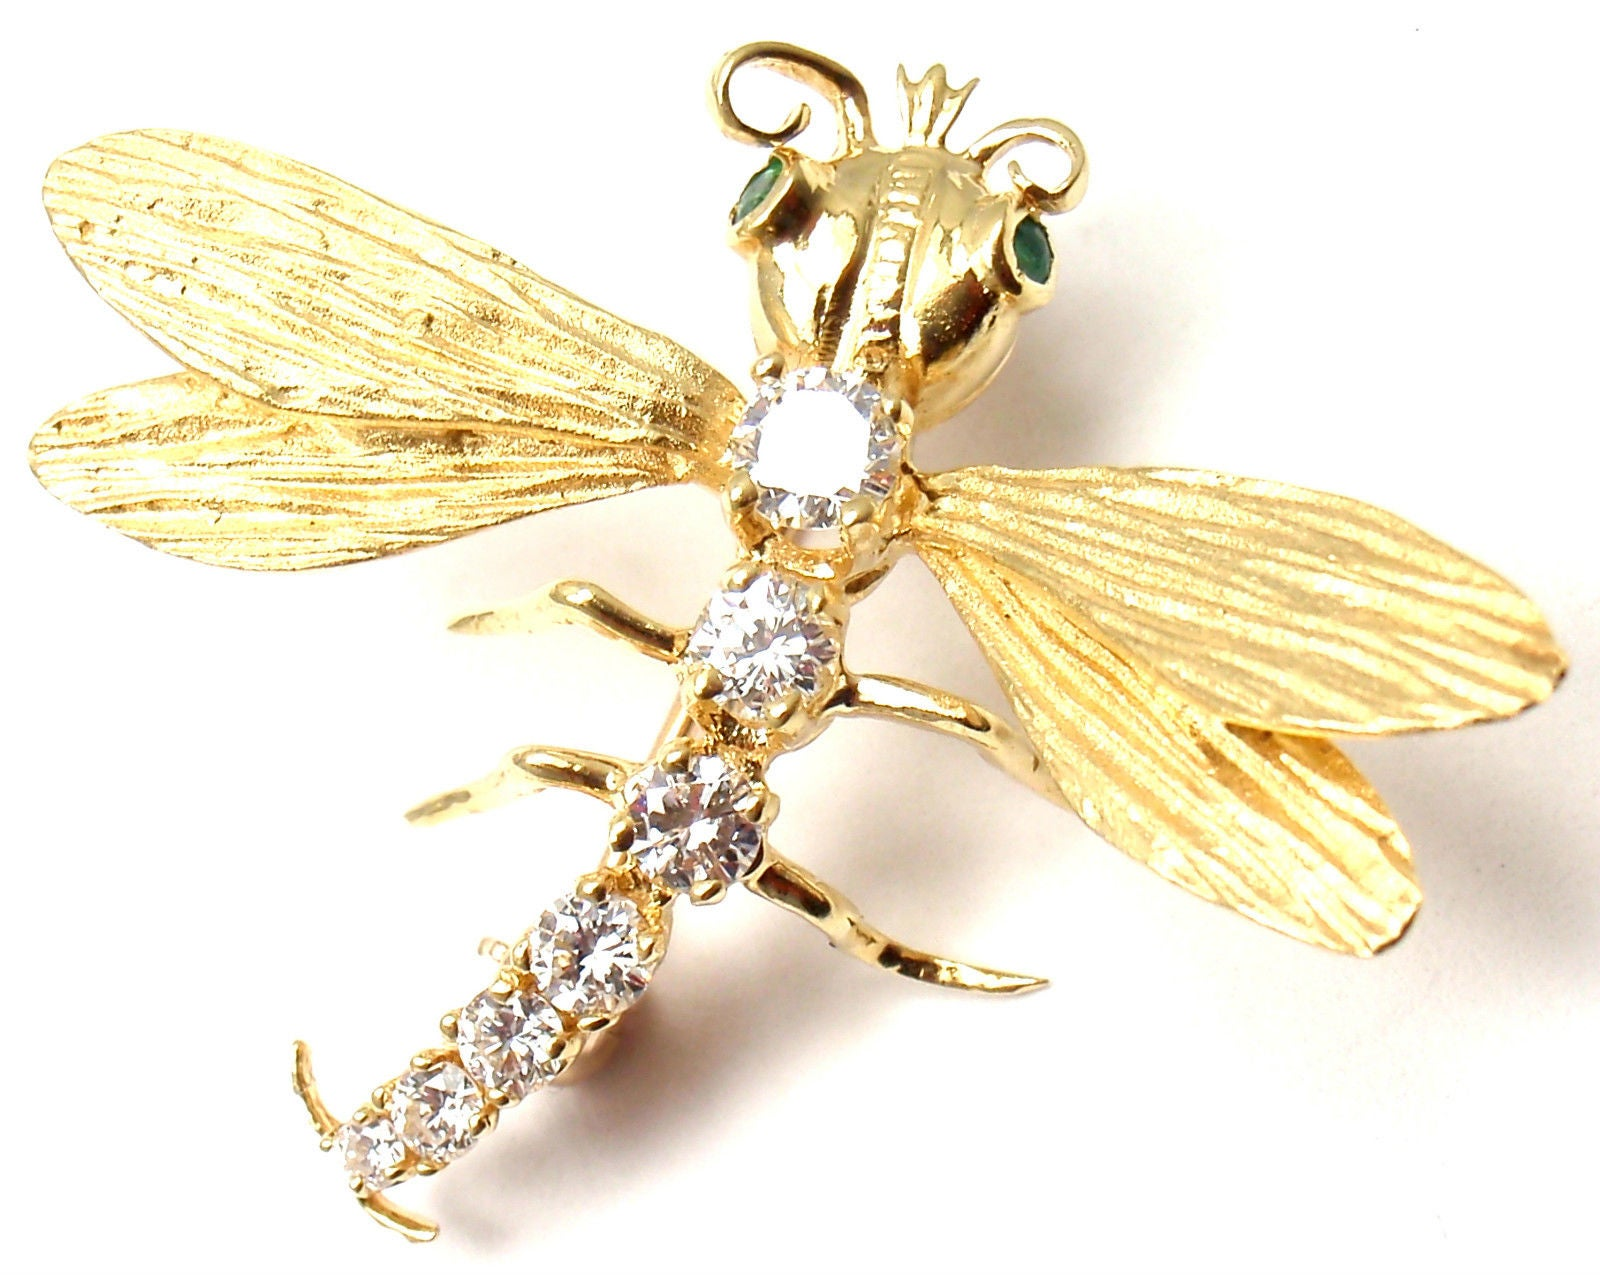 Herbert Rosenthal Diamond Gold Dragonfly Pin Brooch For Sale at 1stdibs